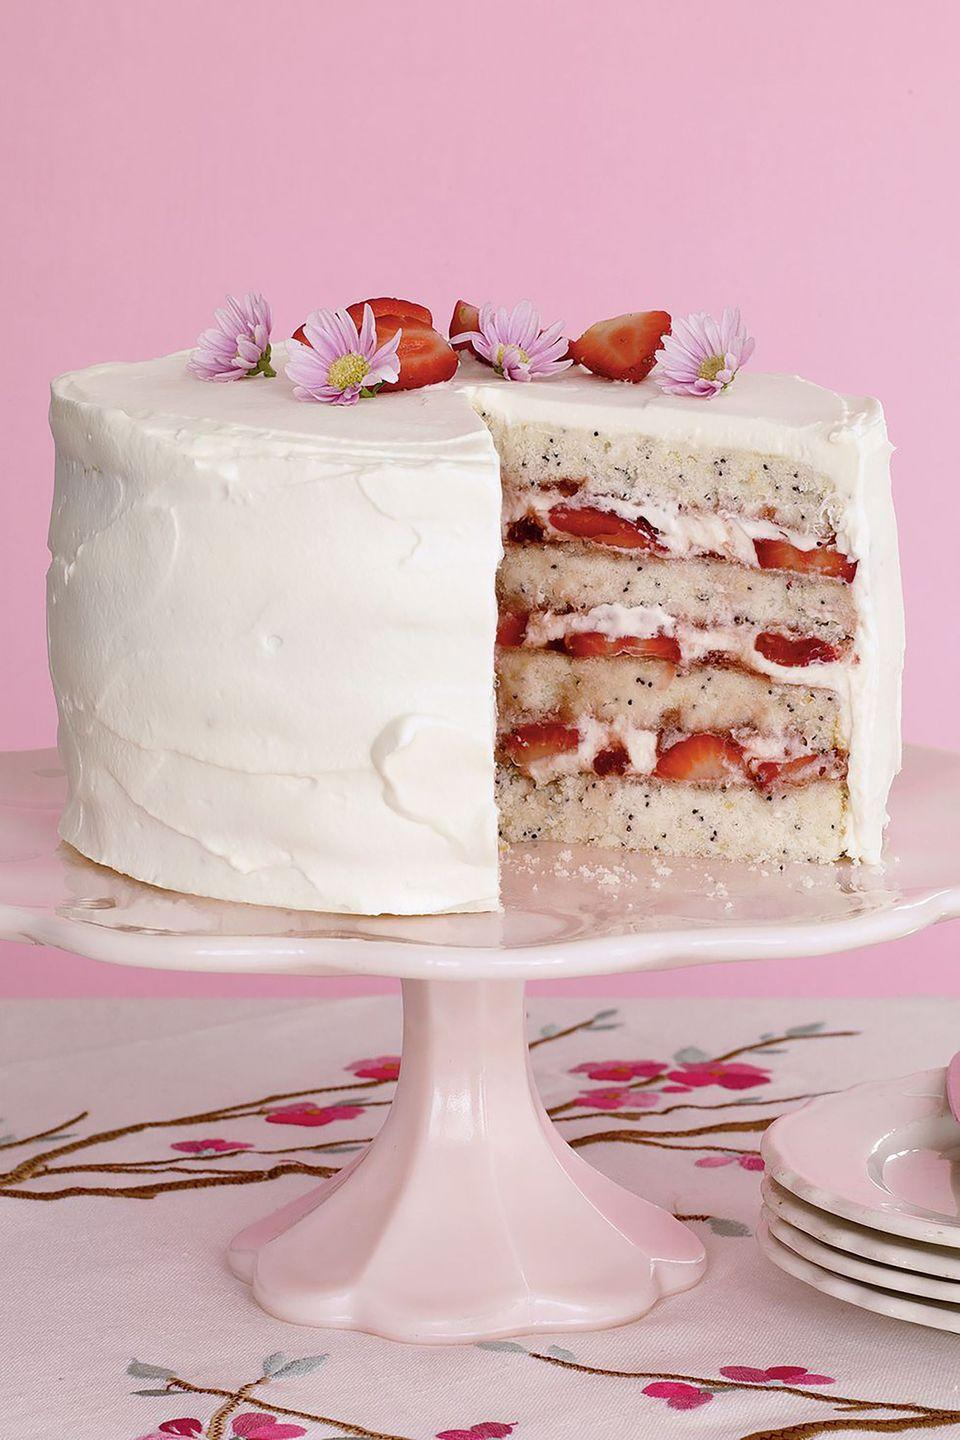 """<p>This strawberry cake will add the red to your white, red, and blue menu. It serves up to 16 people, so don't be afraid to make it for your big bash.</p><p><em><strong><a href=""""https://www.womansday.com/food-recipes/food-drinks/recipes/a10913/lemon-poppy-seed-cake-strawberries-recipe-122355/"""" rel=""""nofollow noopener"""" target=""""_blank"""" data-ylk=""""slk:Get the Lemon Poppy Seed Cake recipe."""" class=""""link rapid-noclick-resp"""">Get the Lemon Poppy Seed Cake recipe.</a></strong></em></p>"""